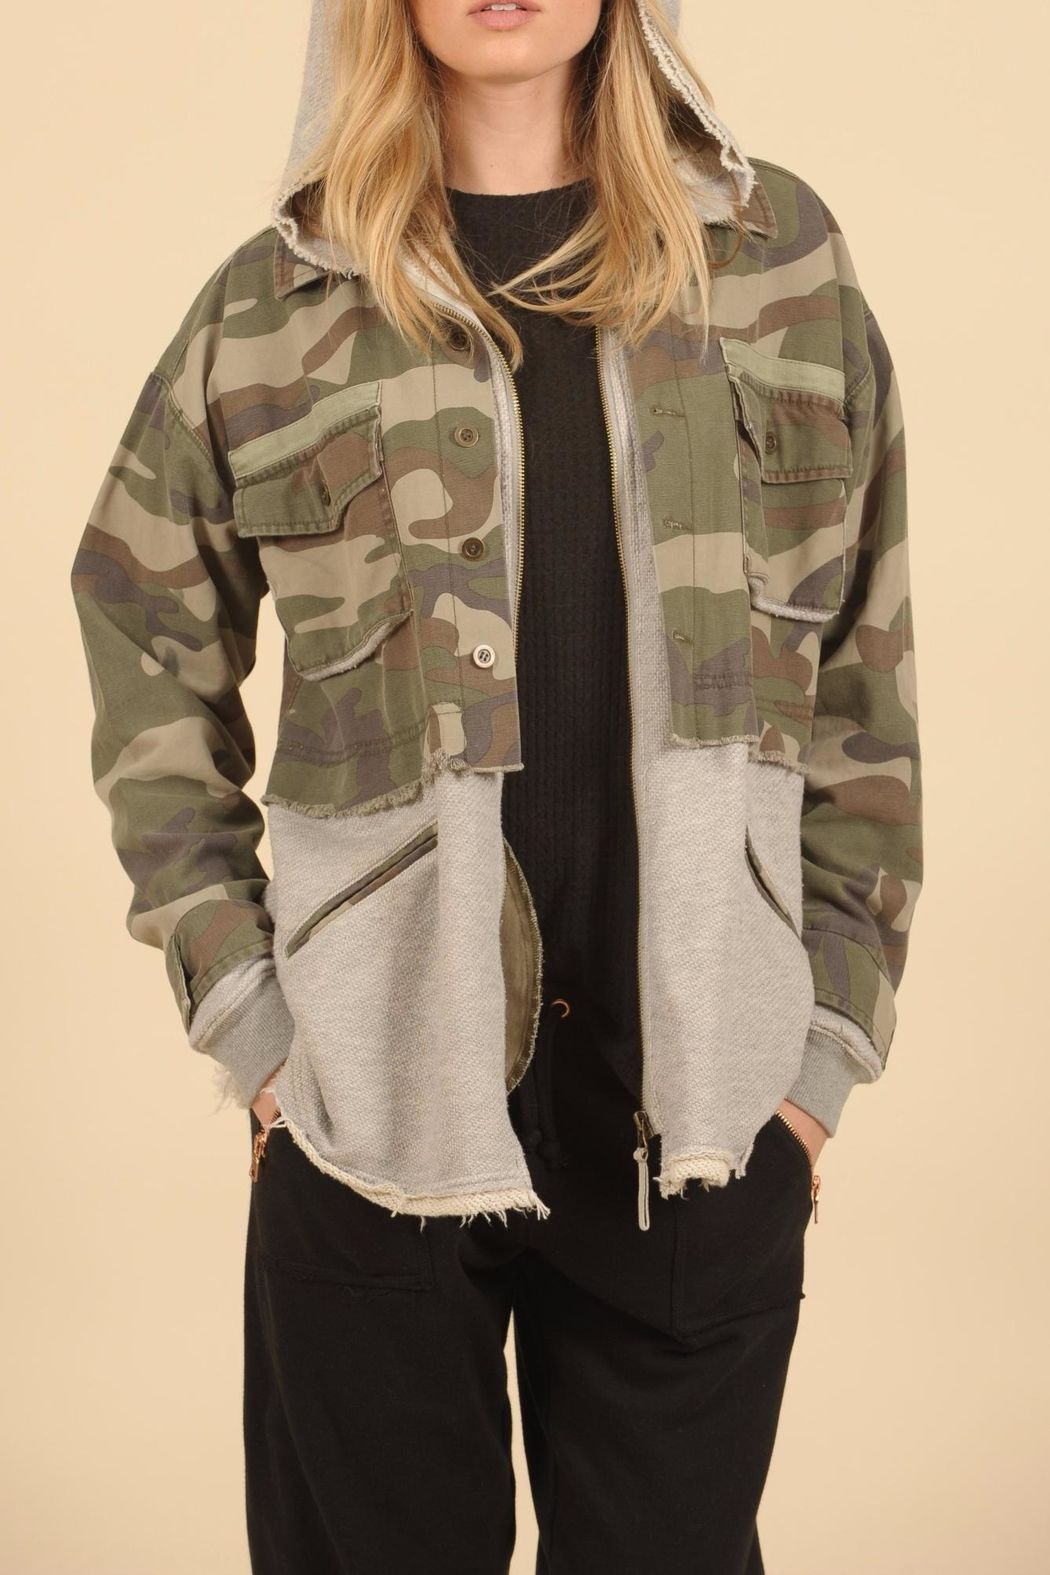 1f0848f99a644 Details include a gray sweat-shirt hoody, zip pockets, and adjustable  straps in the back. Army Camo Jacket by Vintage Havana.